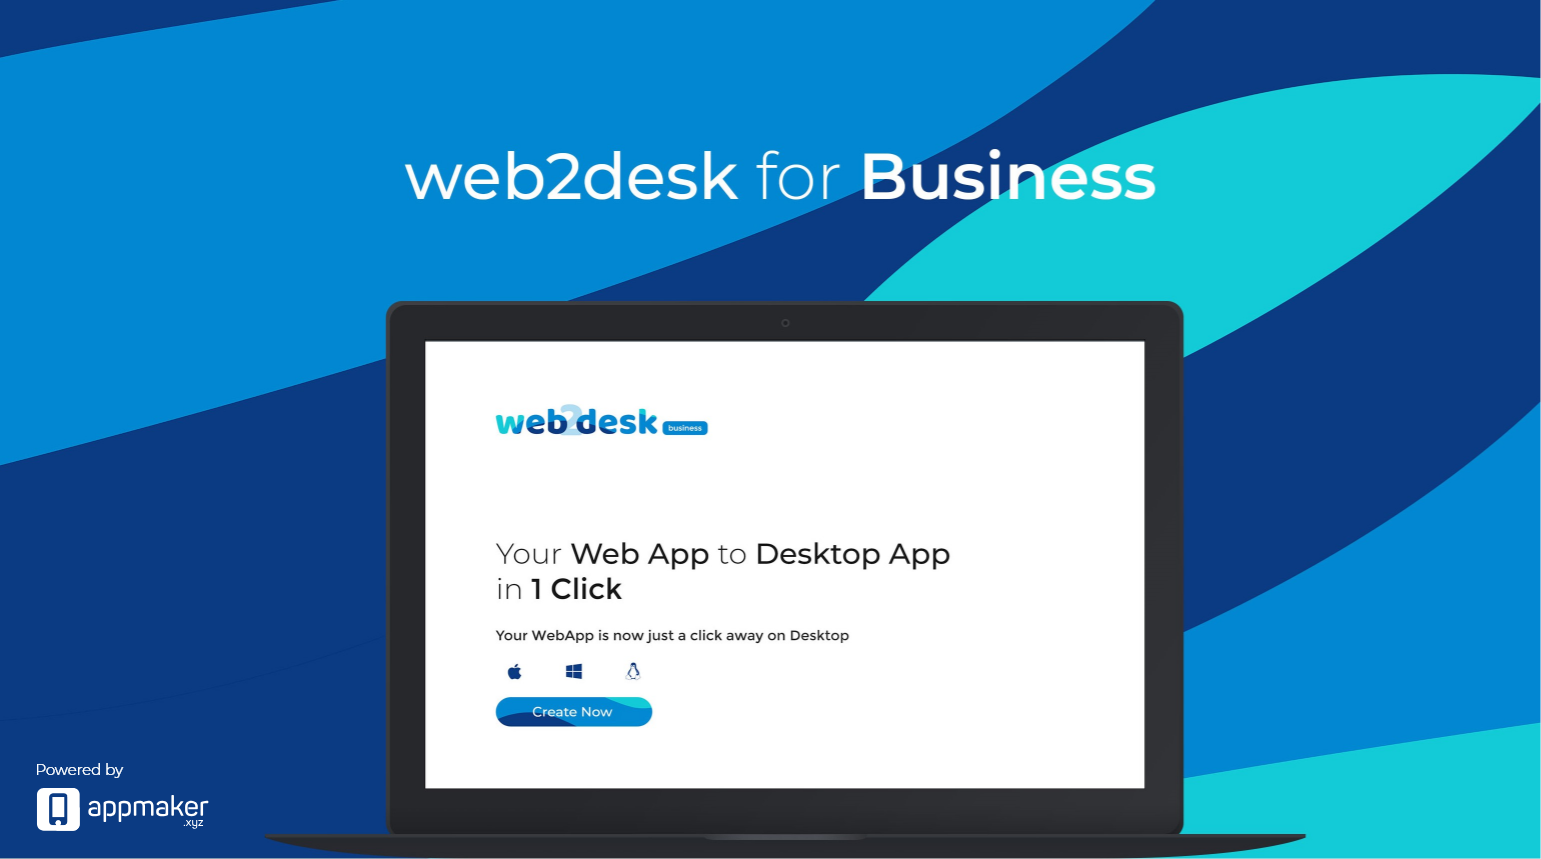 Web2Desk for Business - Convert your web app to desktop app in one click